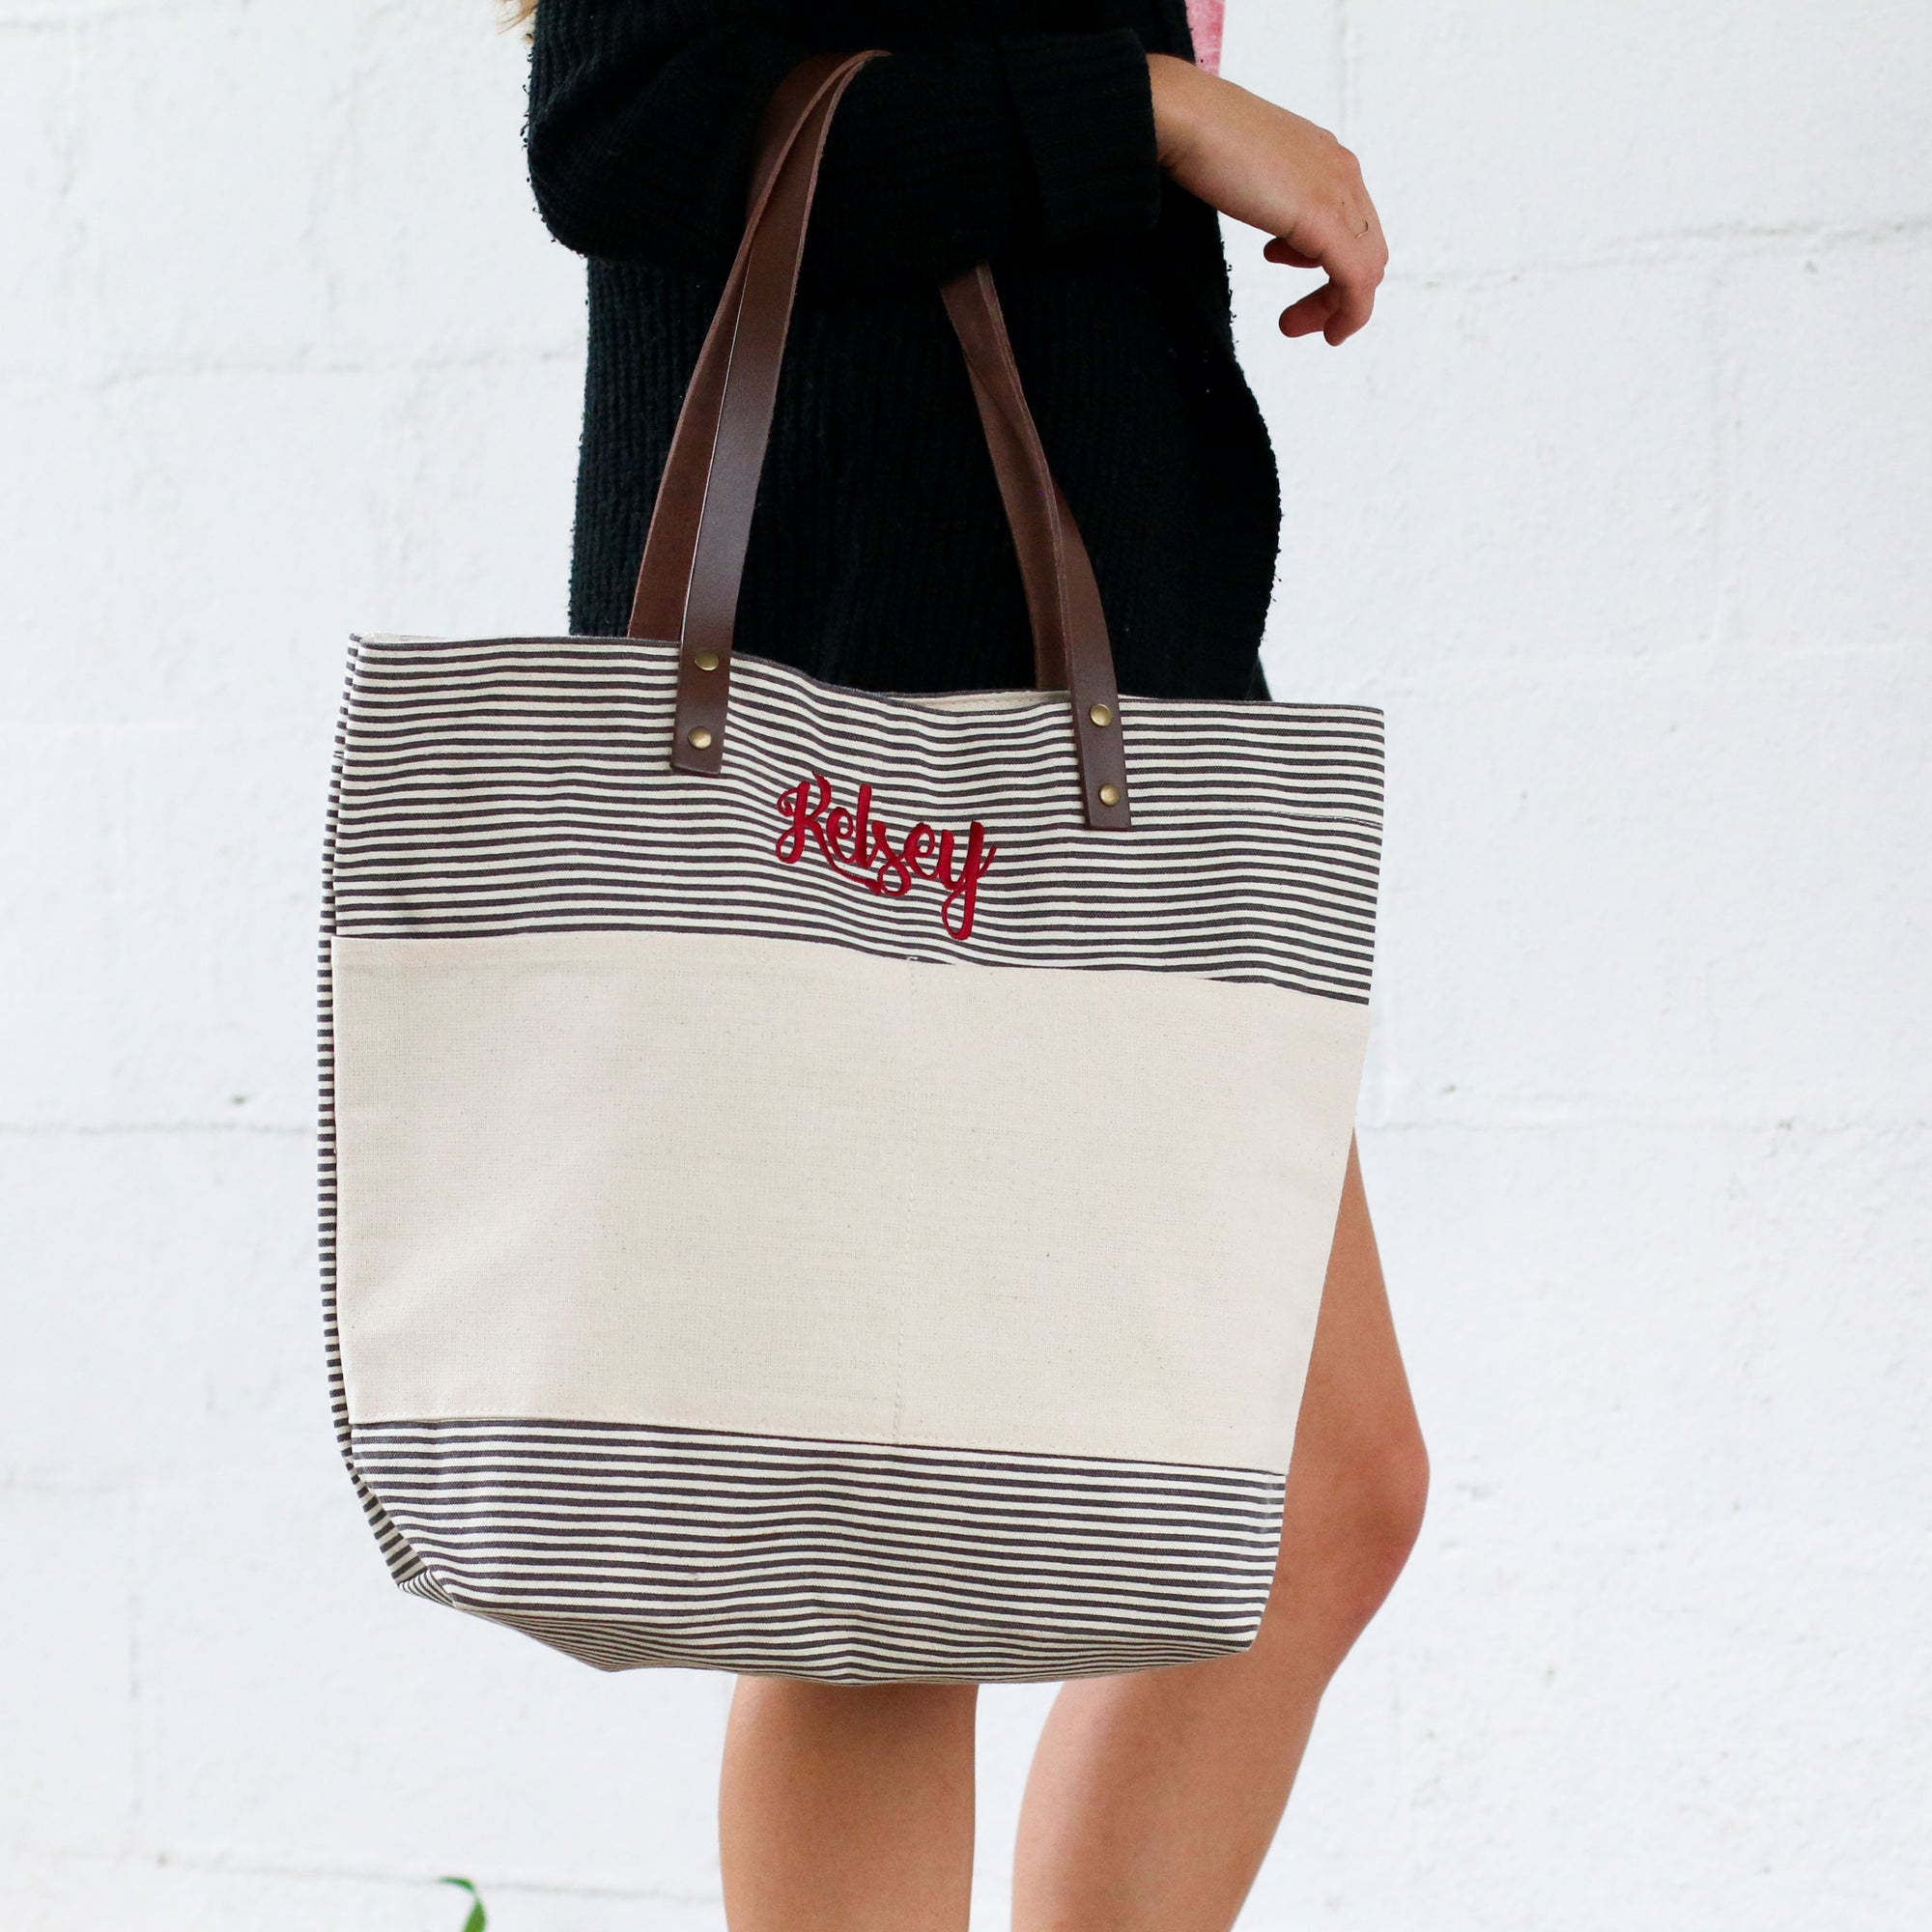 1b6c914e8bcd4c Personalized Stripe Two Toned Canvas Tote - Bridesmaid Gift ...